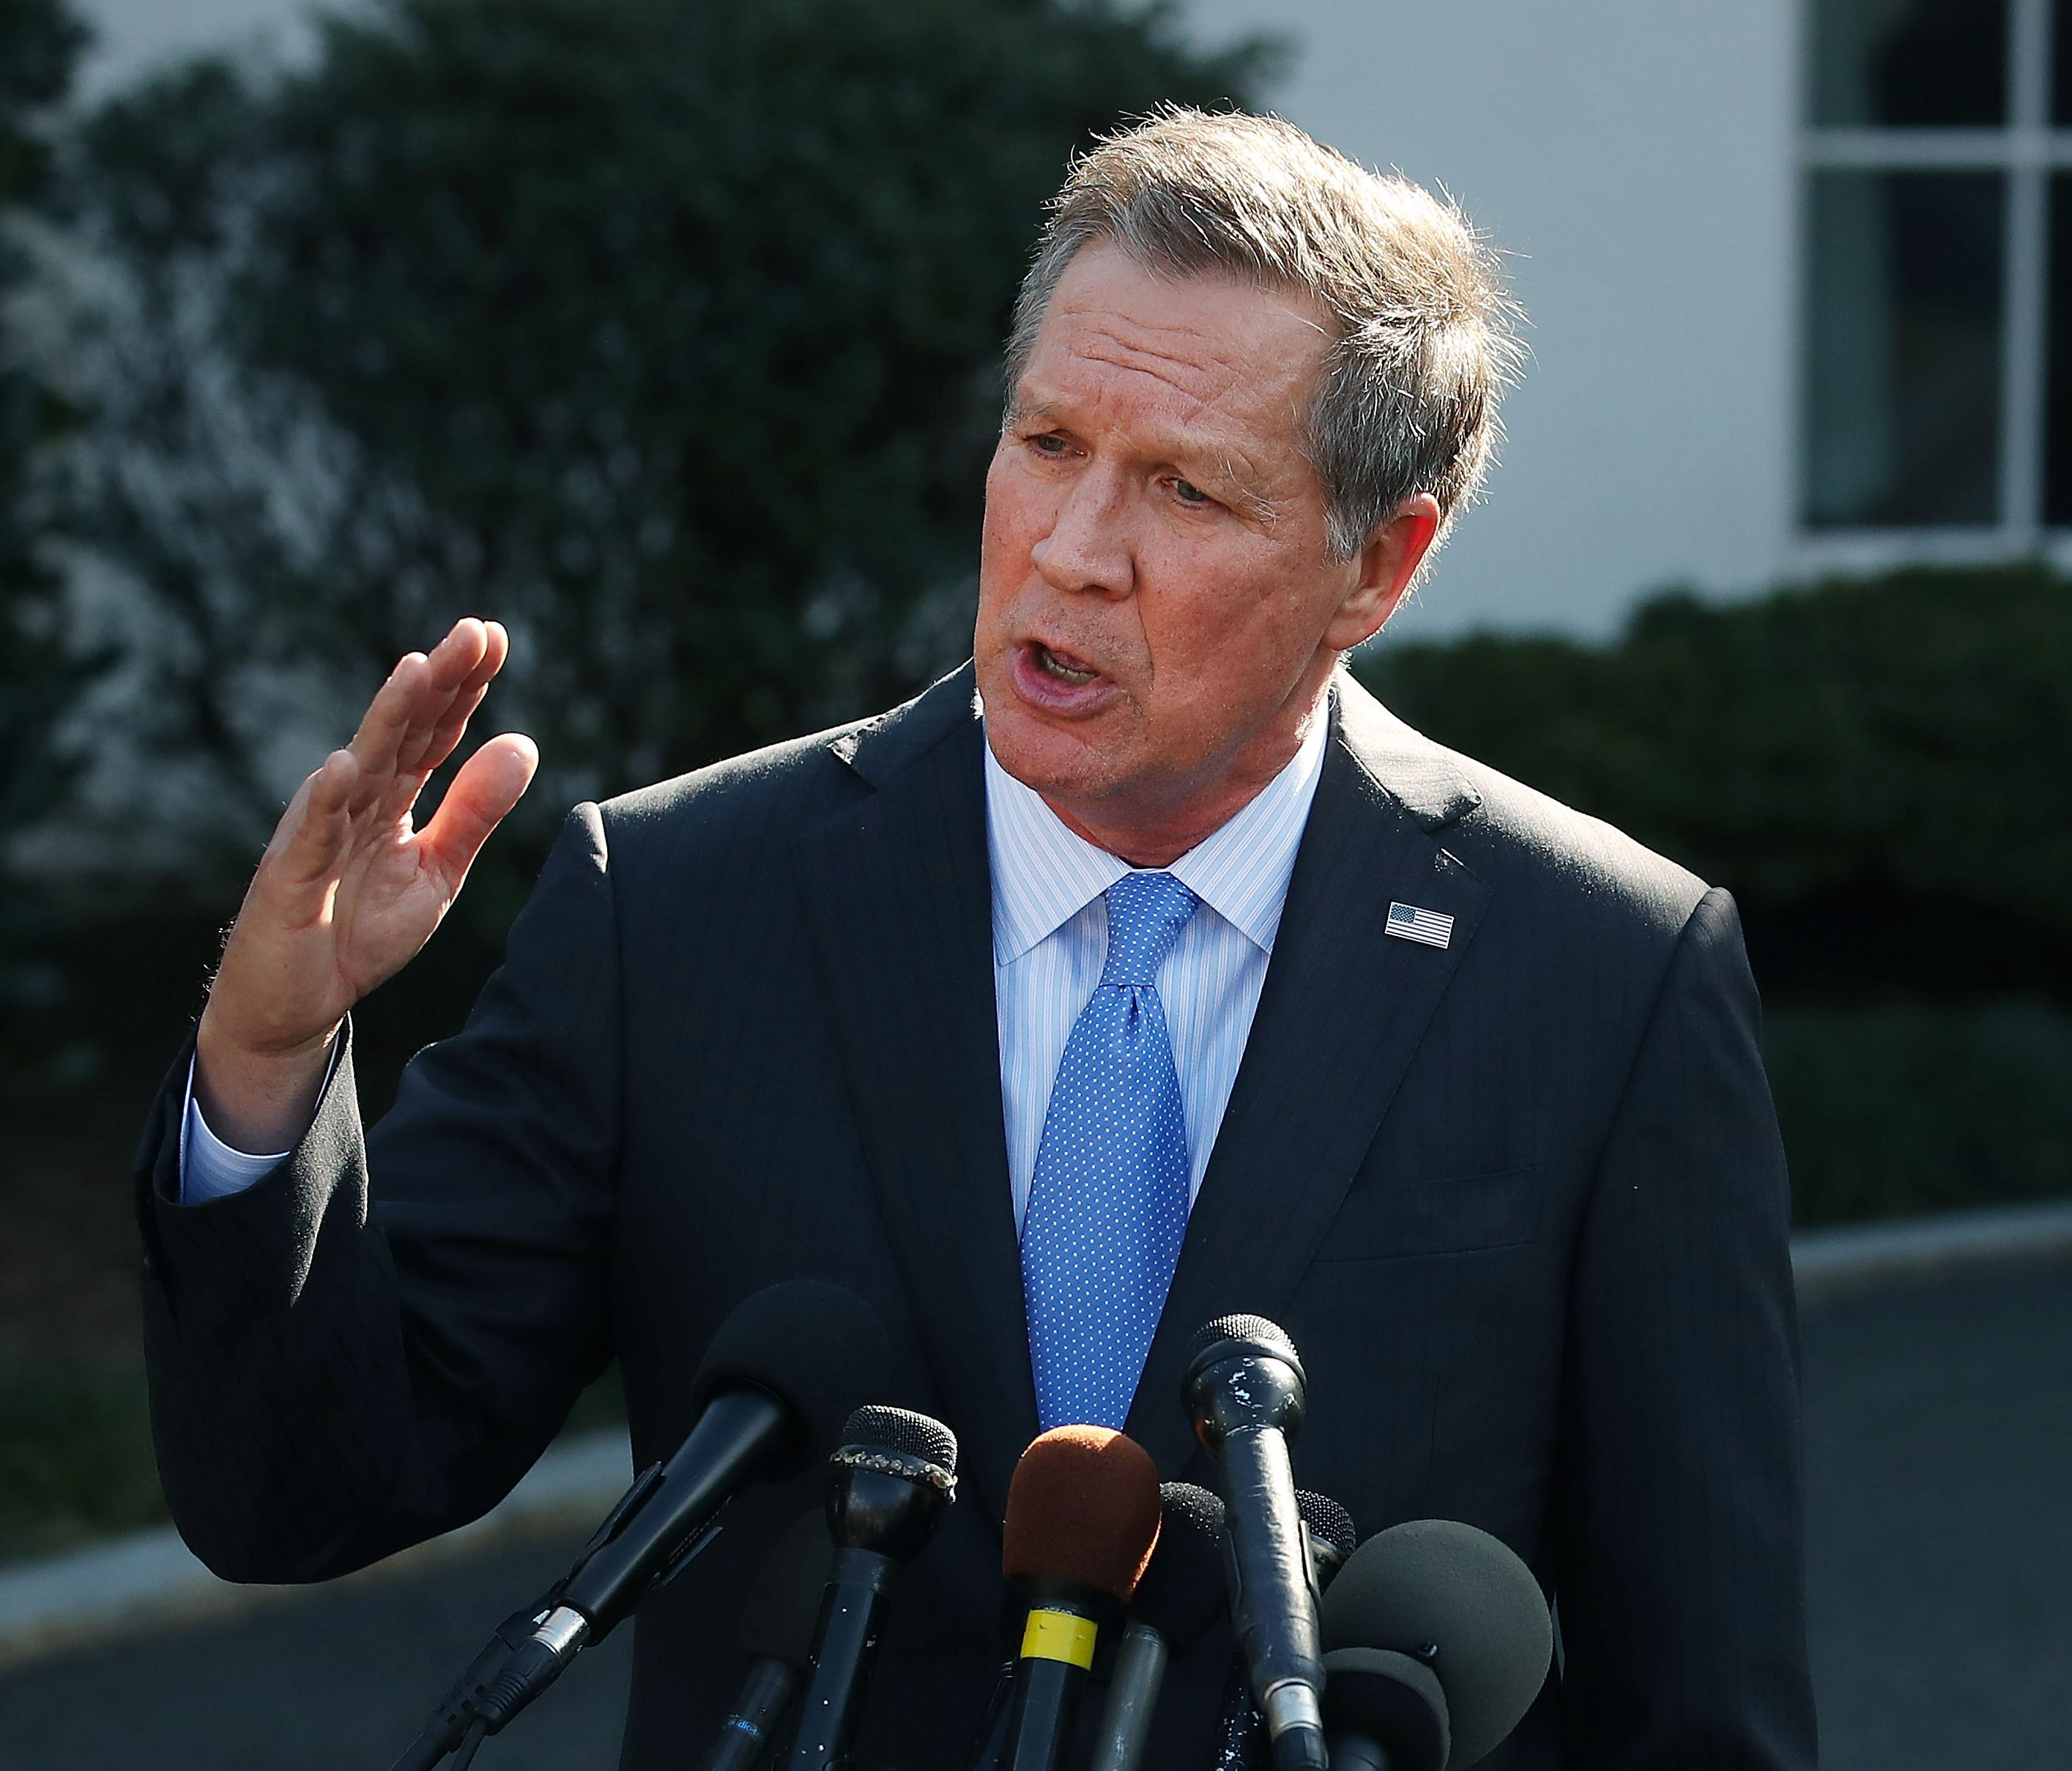 Ohio Governor John Kasich, R, speaks to reporters after a meeting with President Donald Trump Feb. 24, 2017.